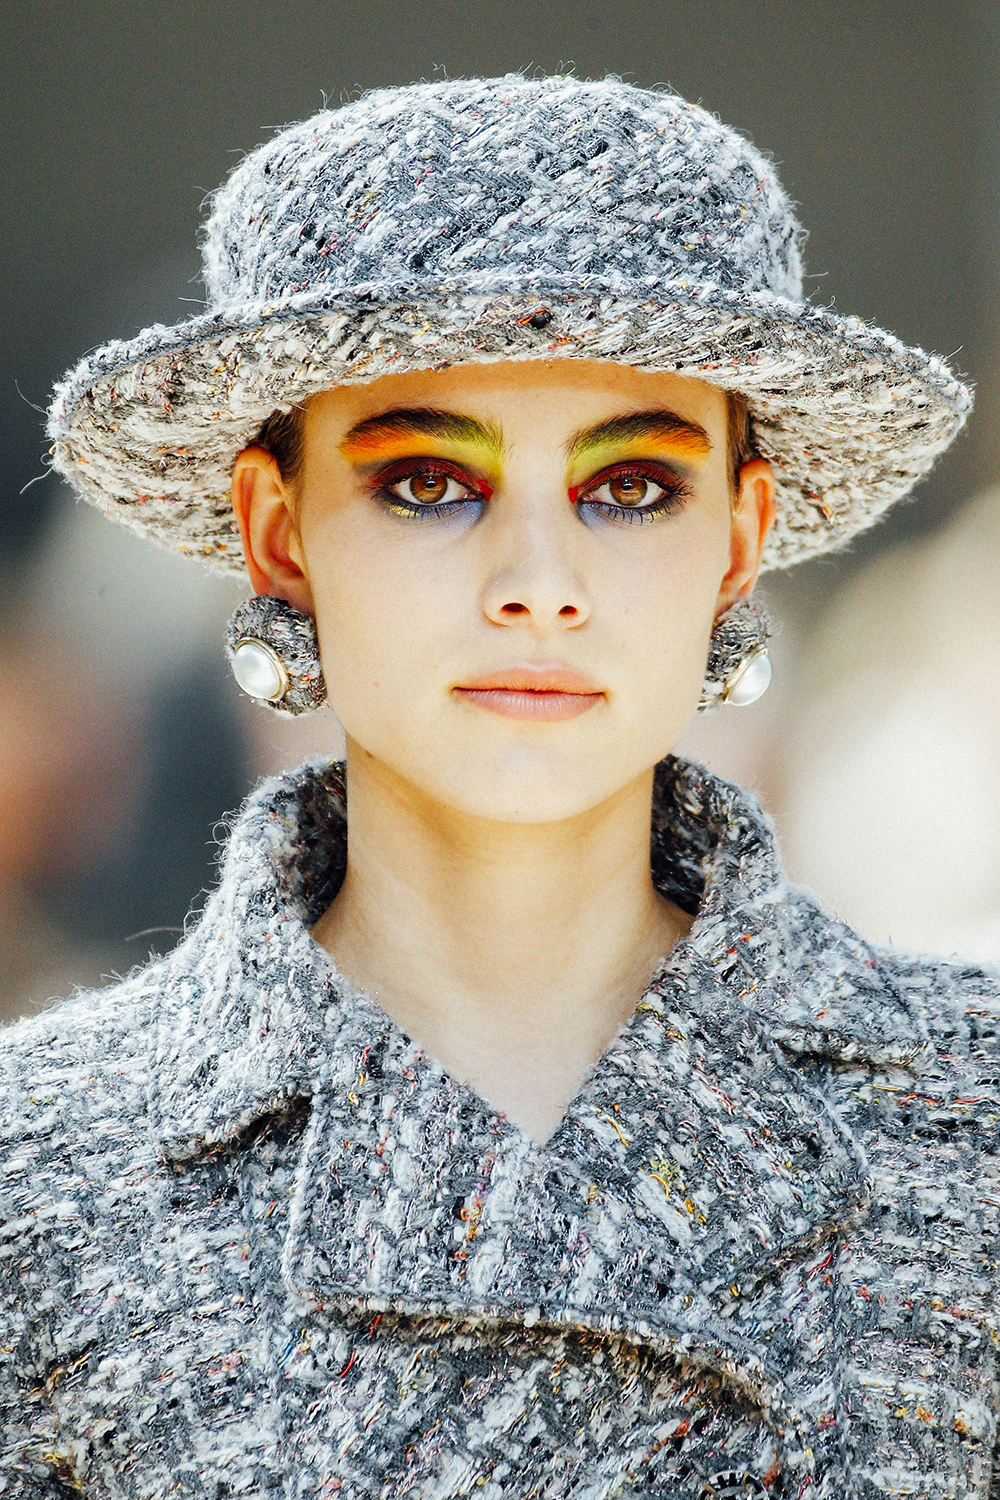 Details from the Chanel Haute Couture Fall 2017 via Vogue Runway